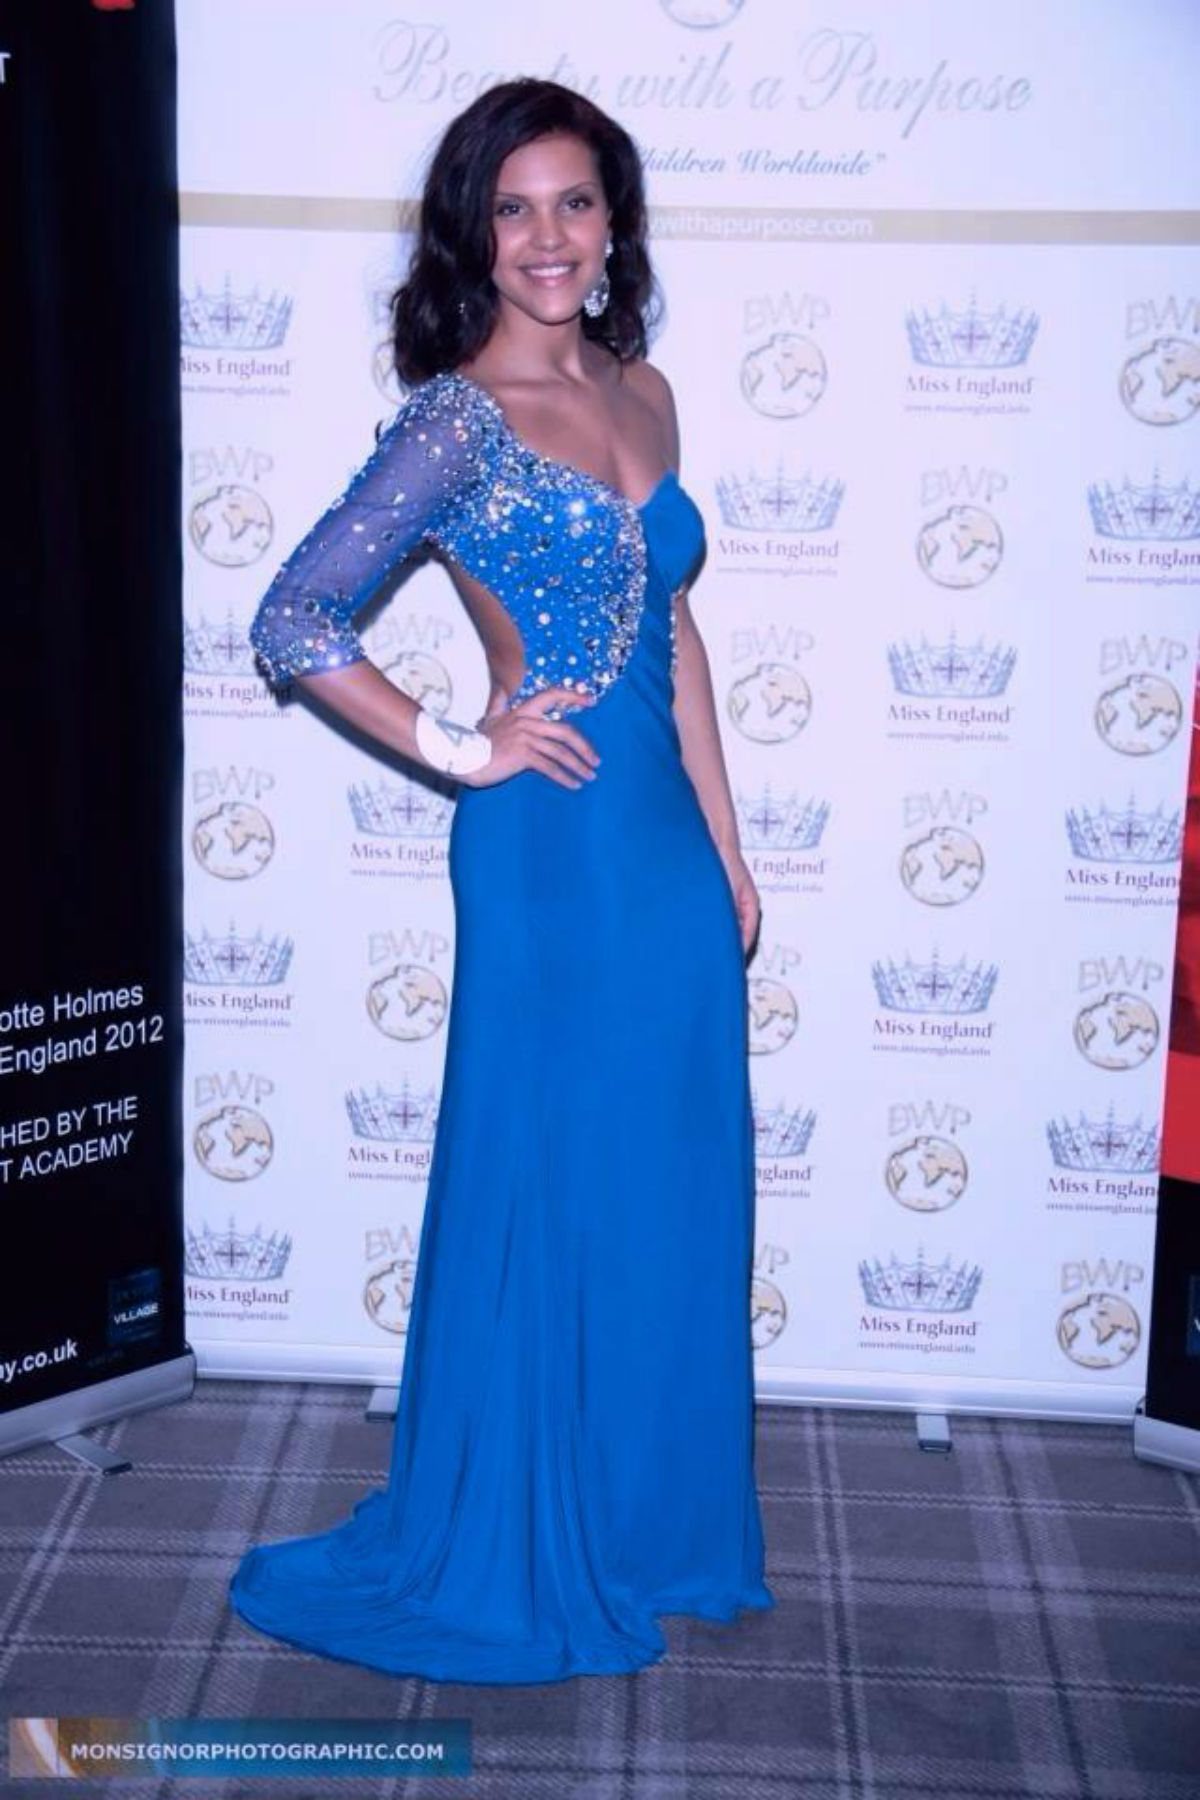 Saffron Corcoran, 17, will take part in the Miss Teen national final after being crowned Miss Teen Greater London